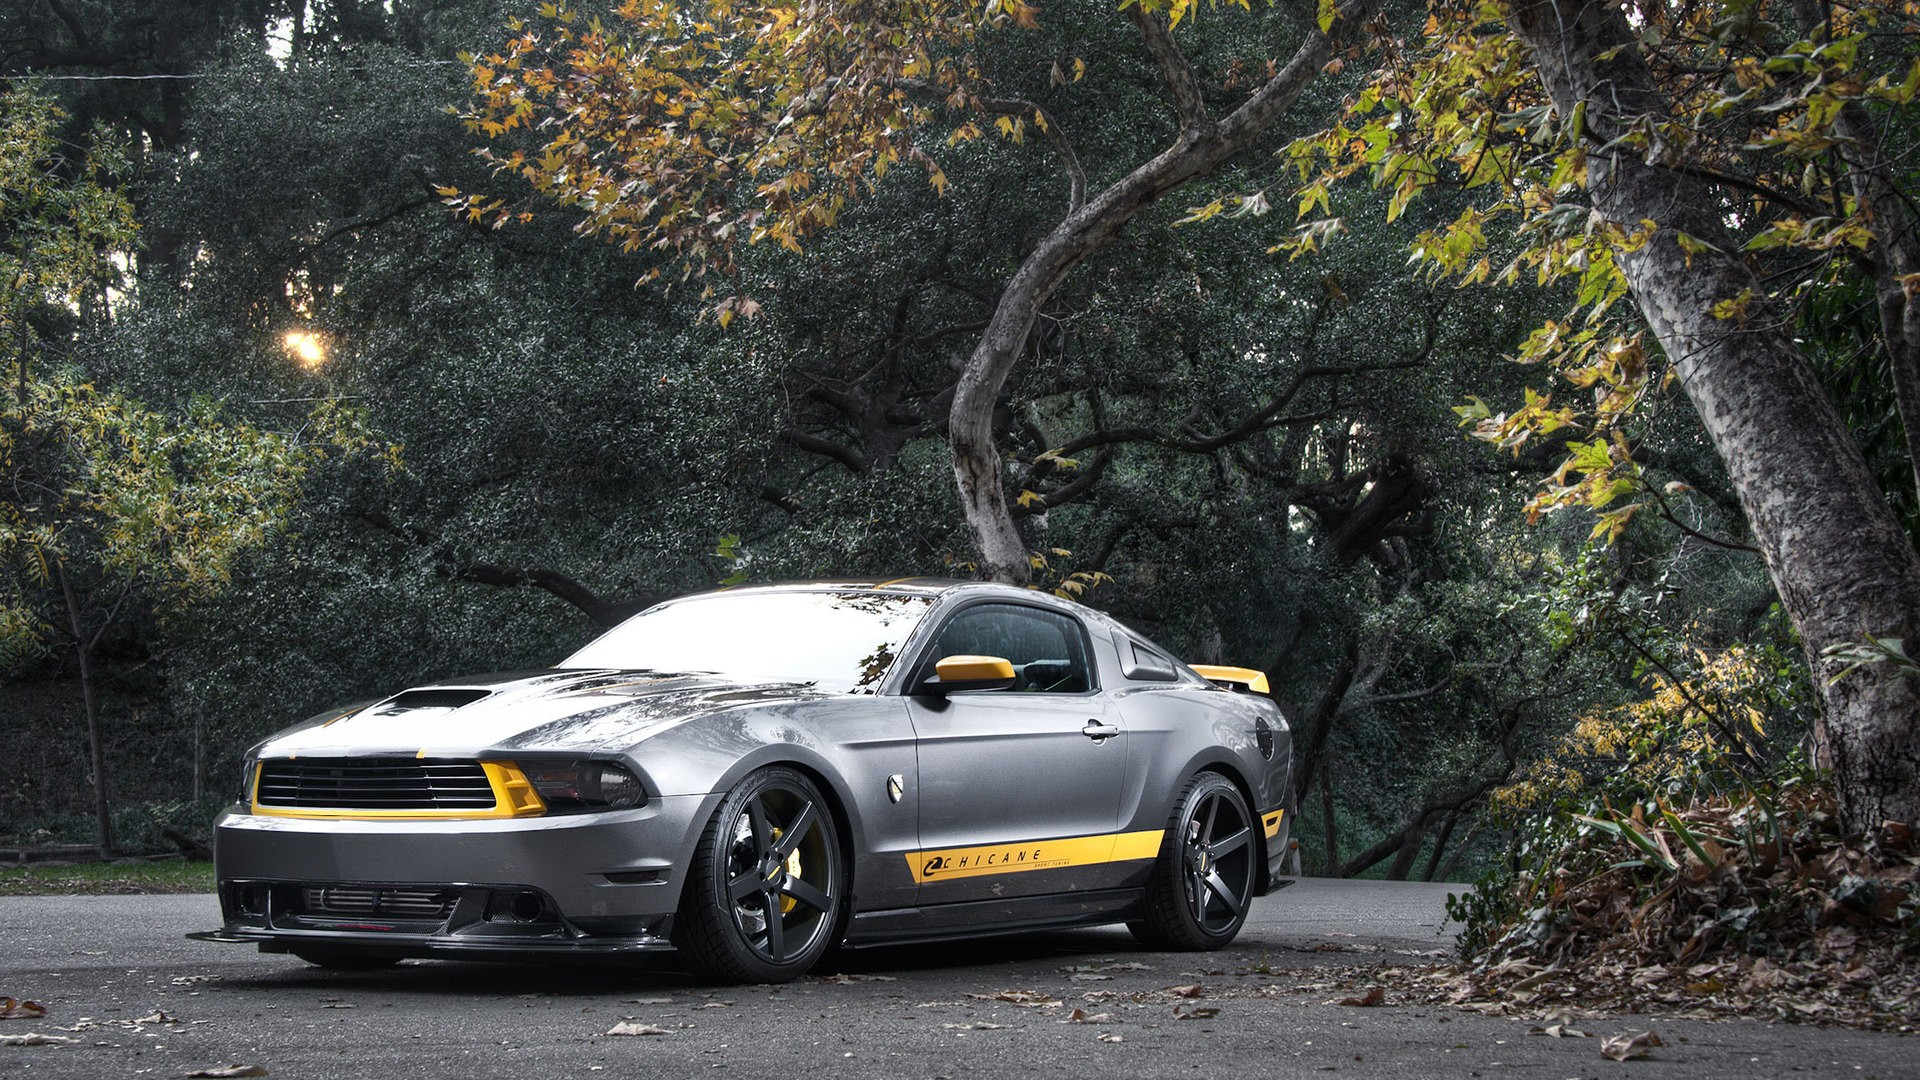 Download 1920x1080 Wallpaper Ford Mustang Gt Car Full Hd Hdtv Fhd